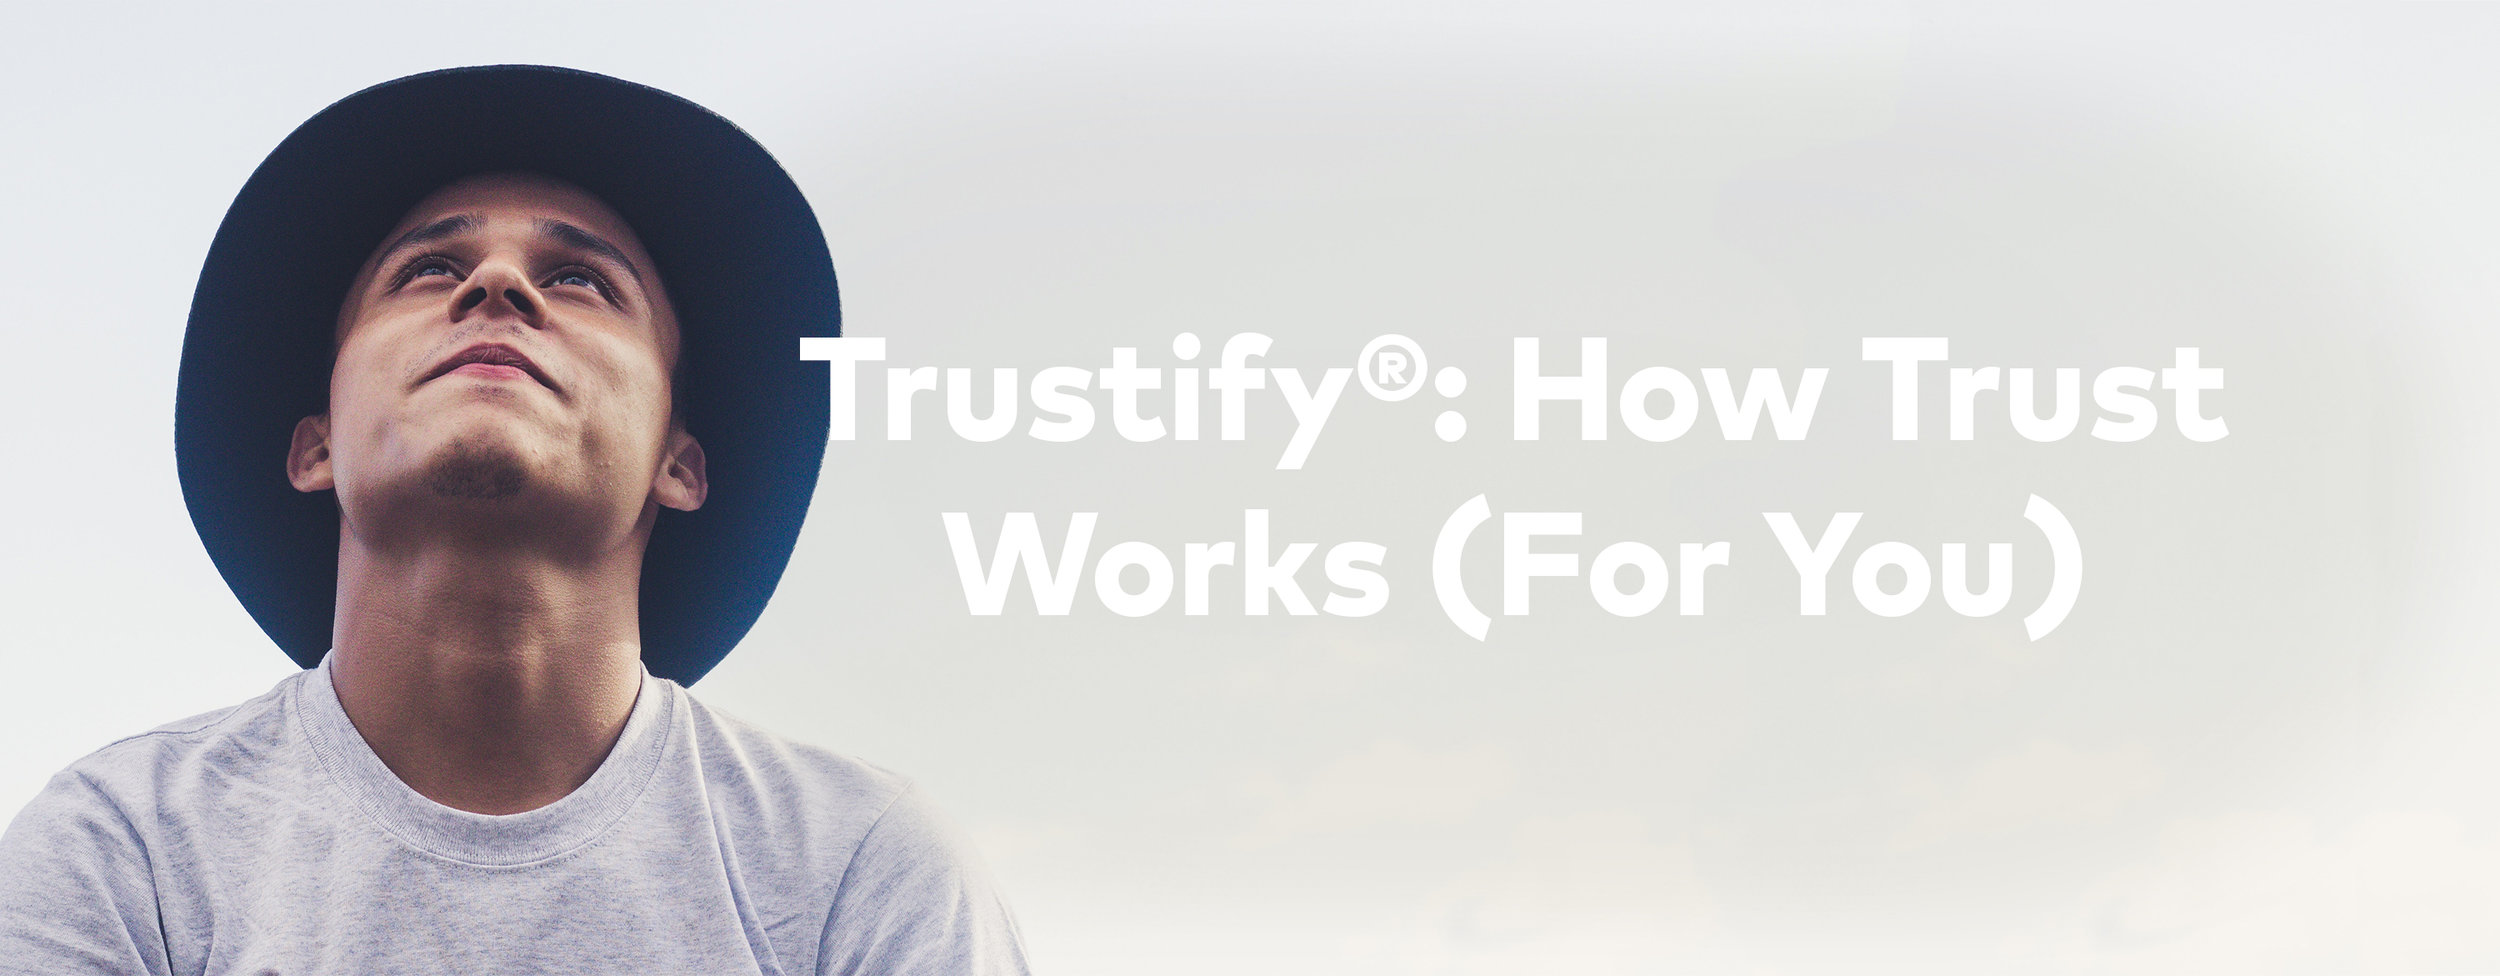 Mext_Consulting_Firm_Melbourne_Trust_Trustify_How_Trust_Works_For_You_Banner.jpg